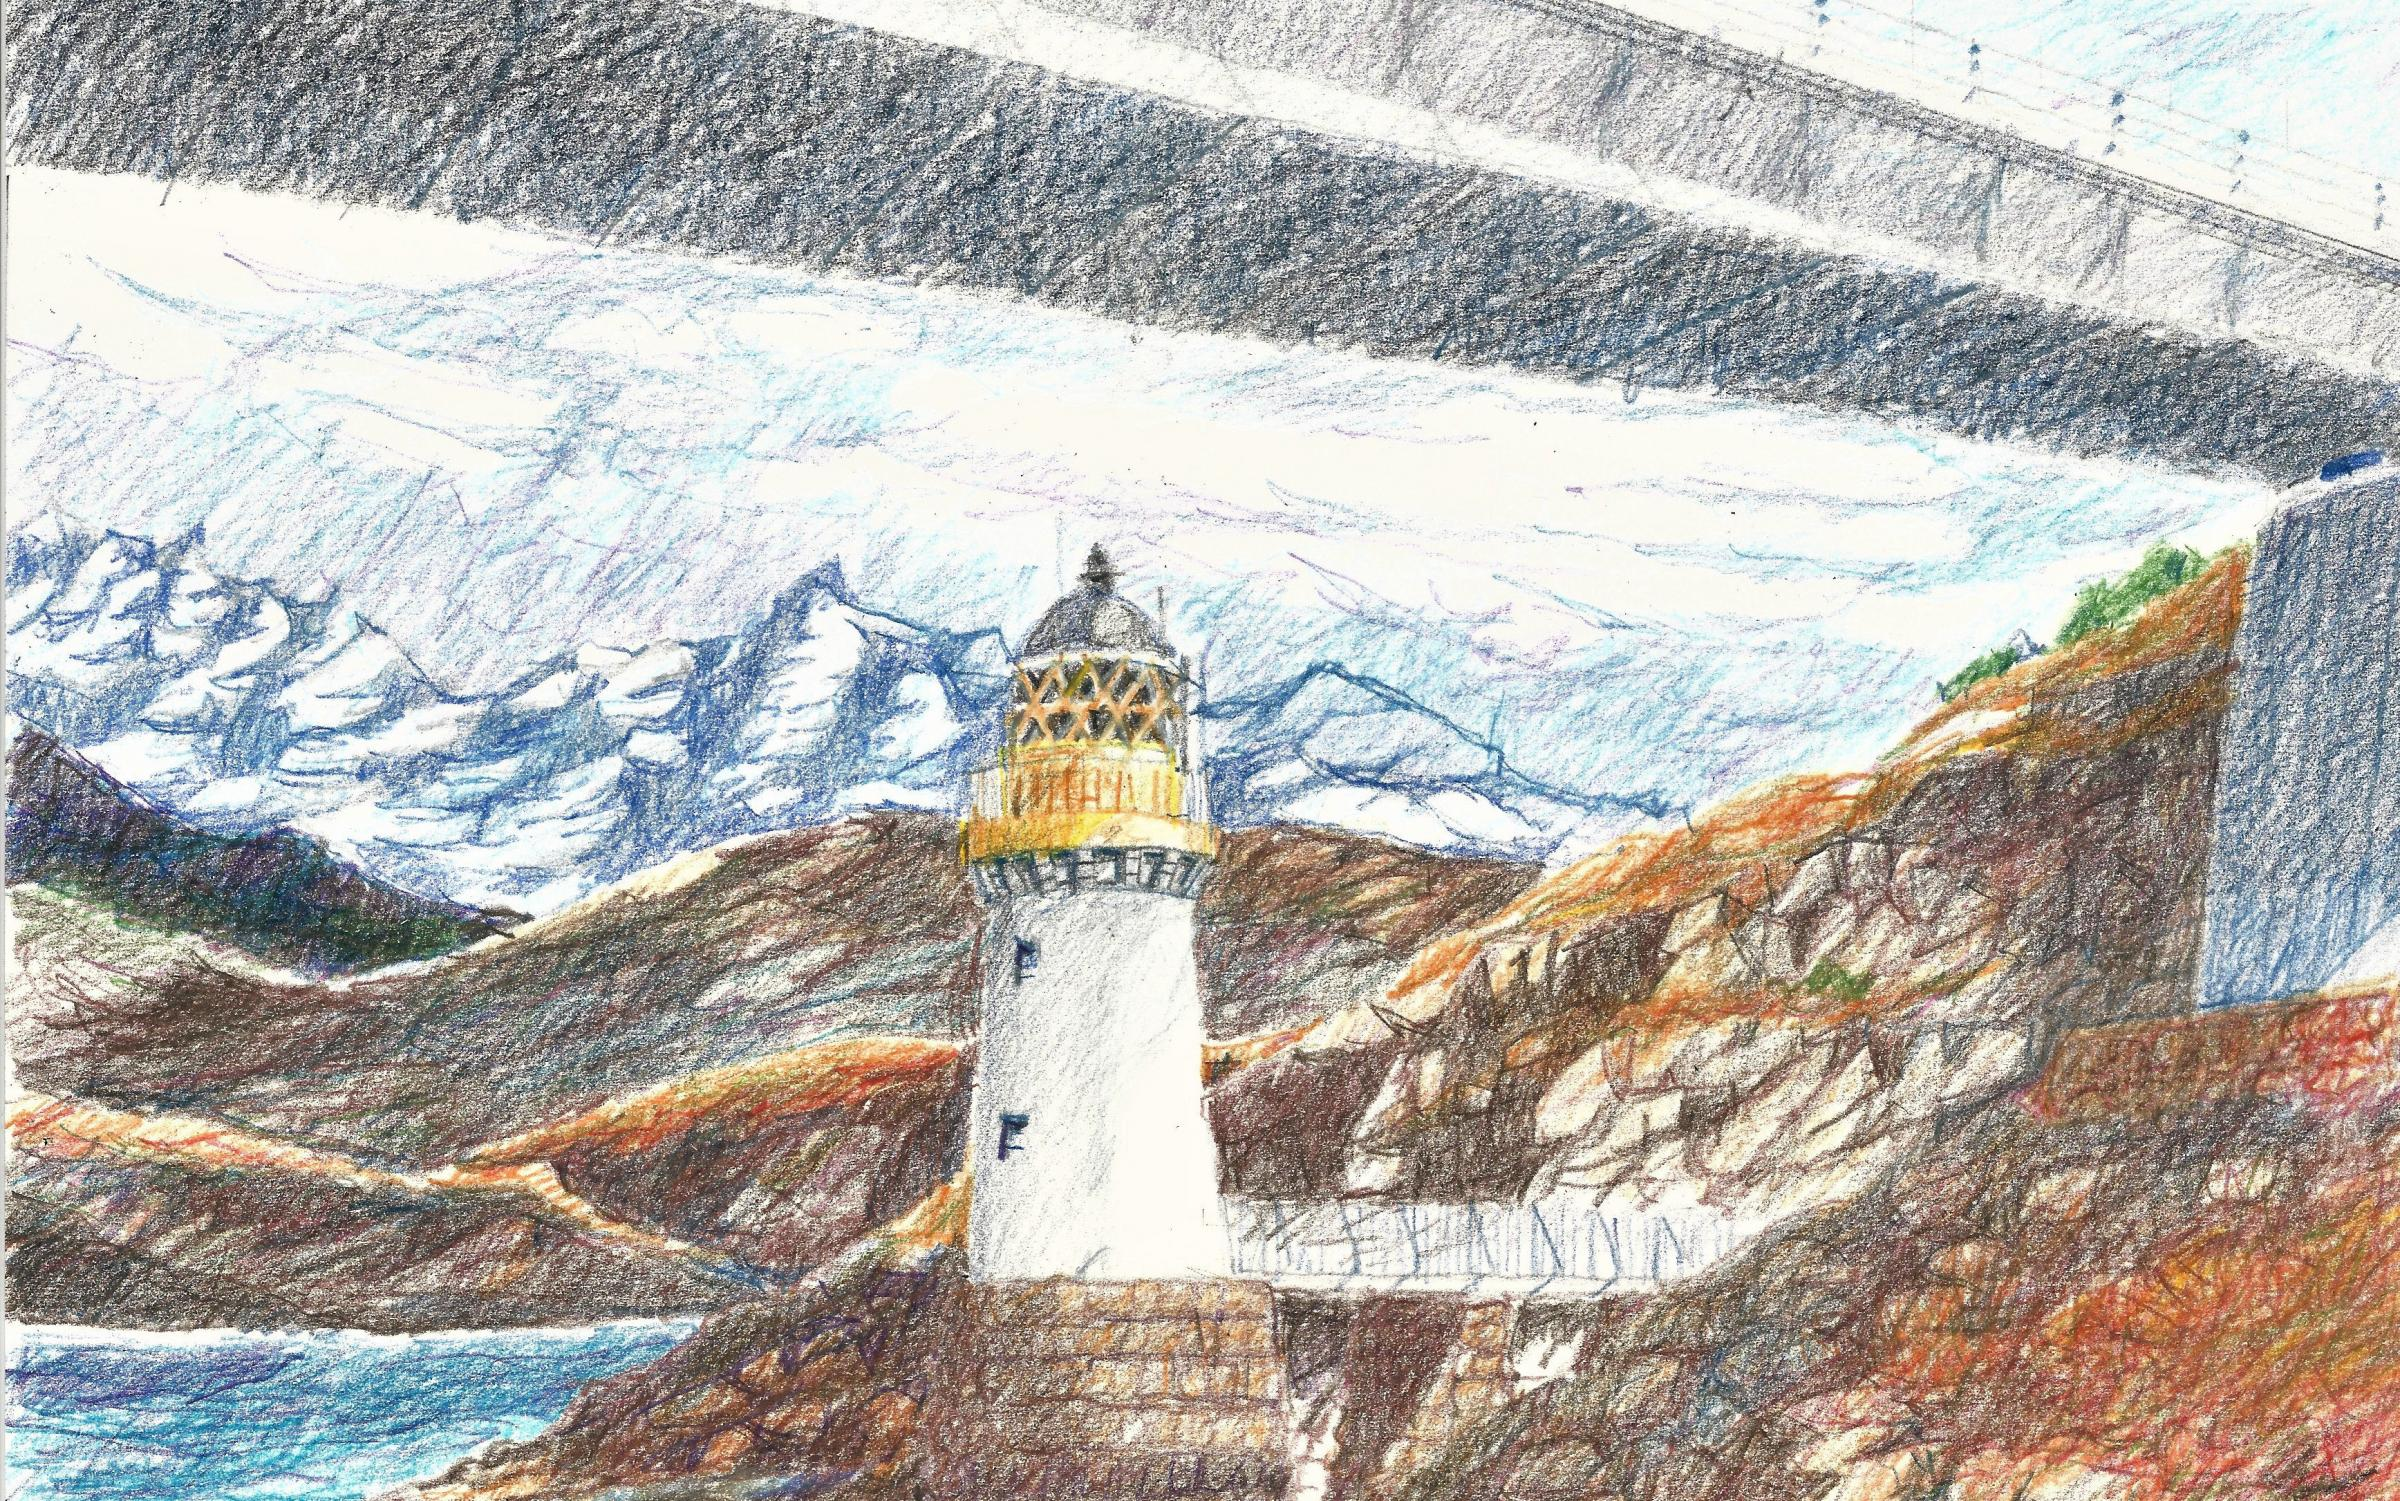 Architect's drawings of Scottish landmark draw global attention